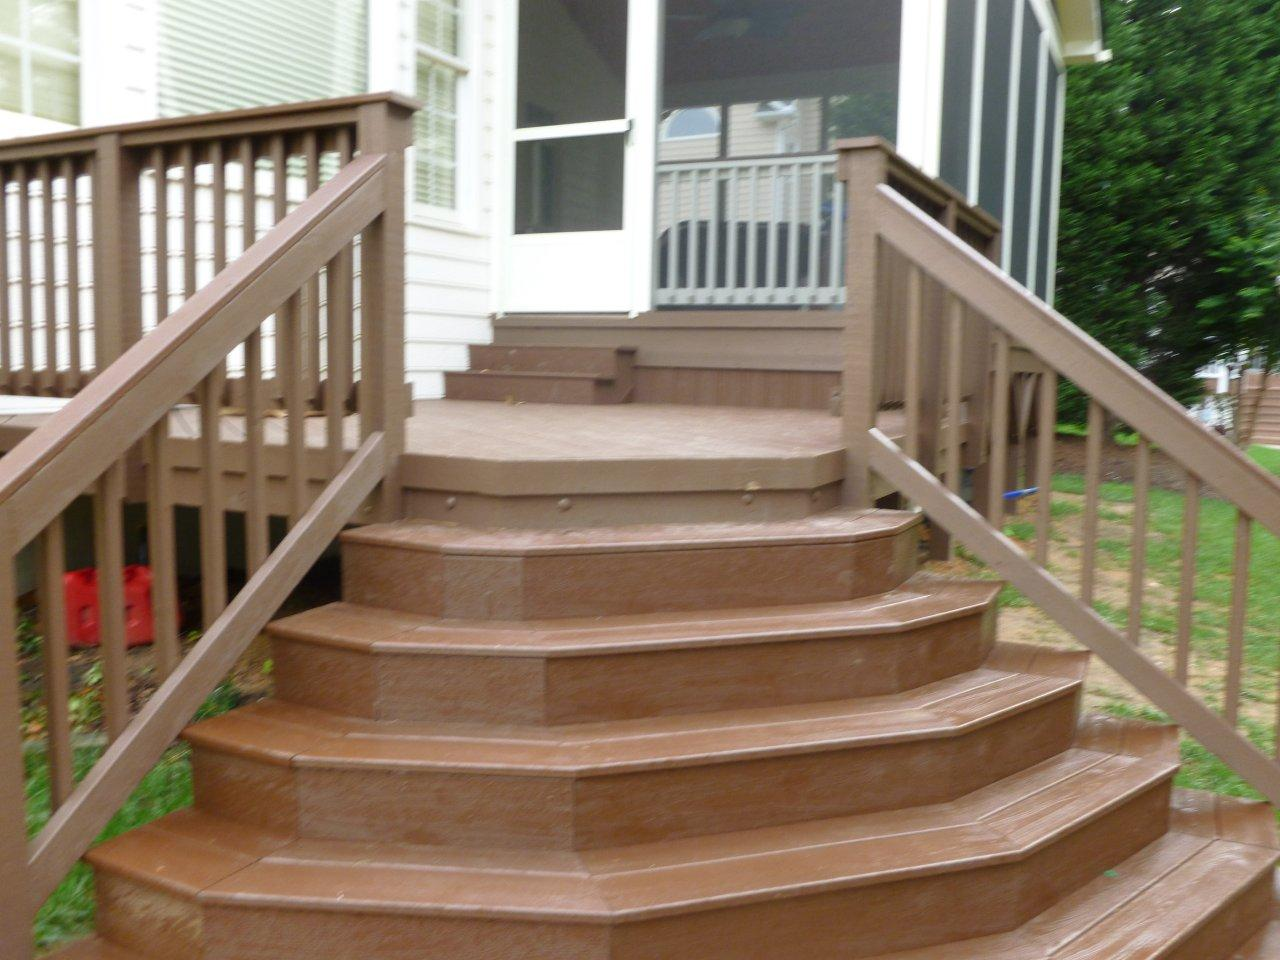 Best Wood For Outdoor Stairs